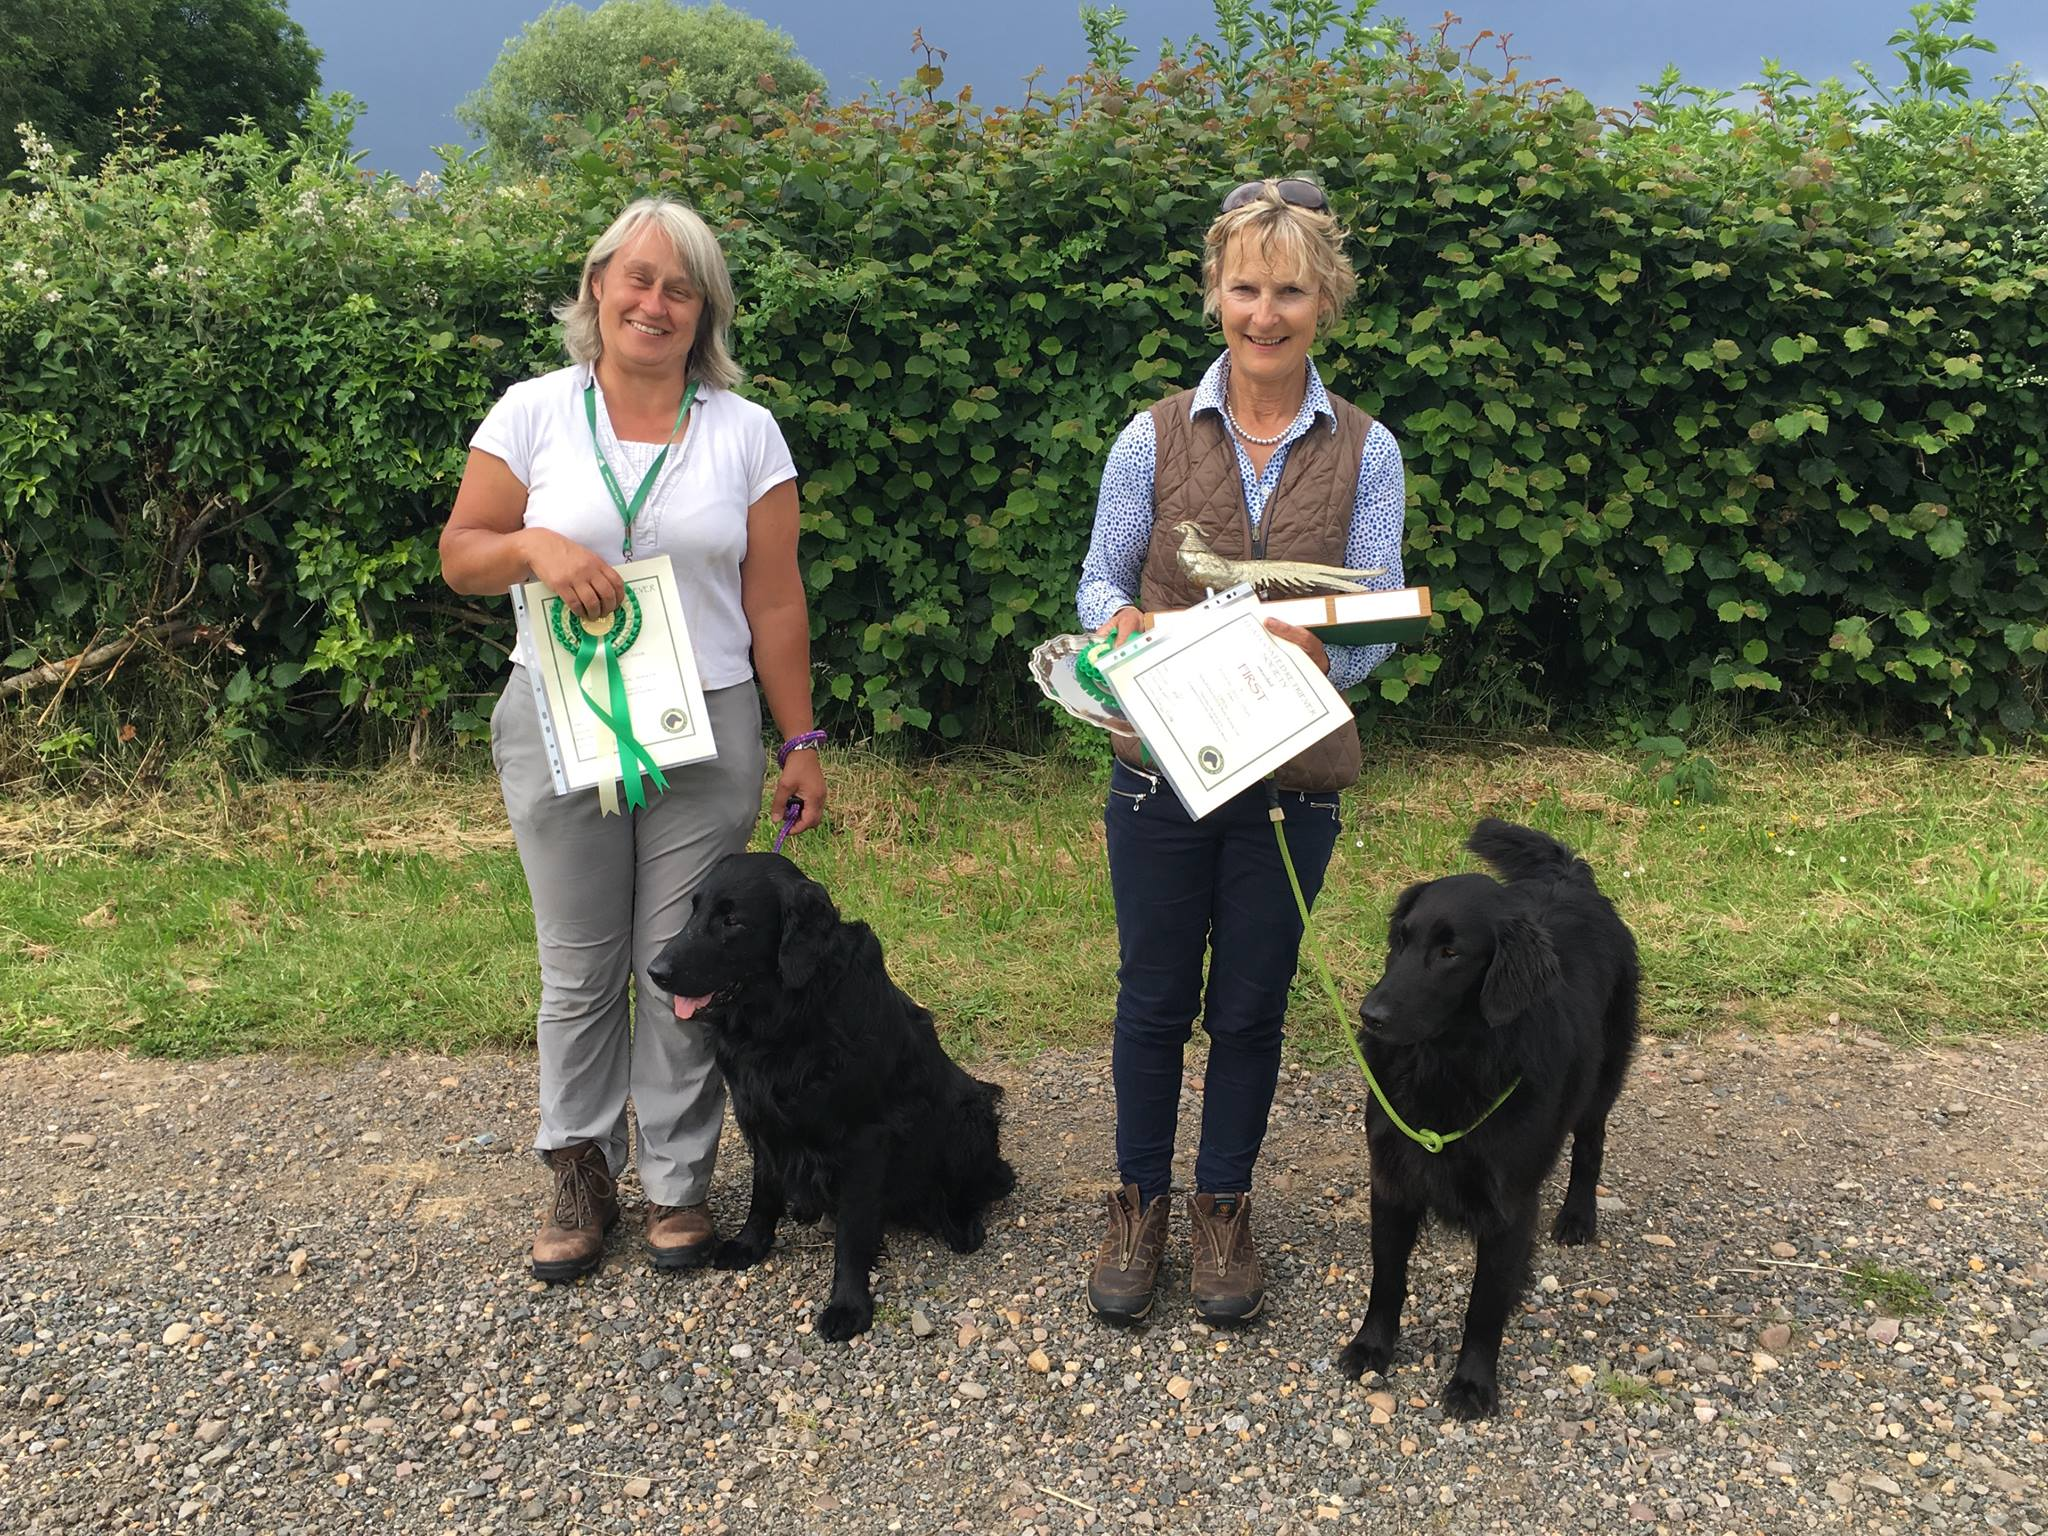 Caroline Hewison and Jacqui Crew OPEN Prizewinners